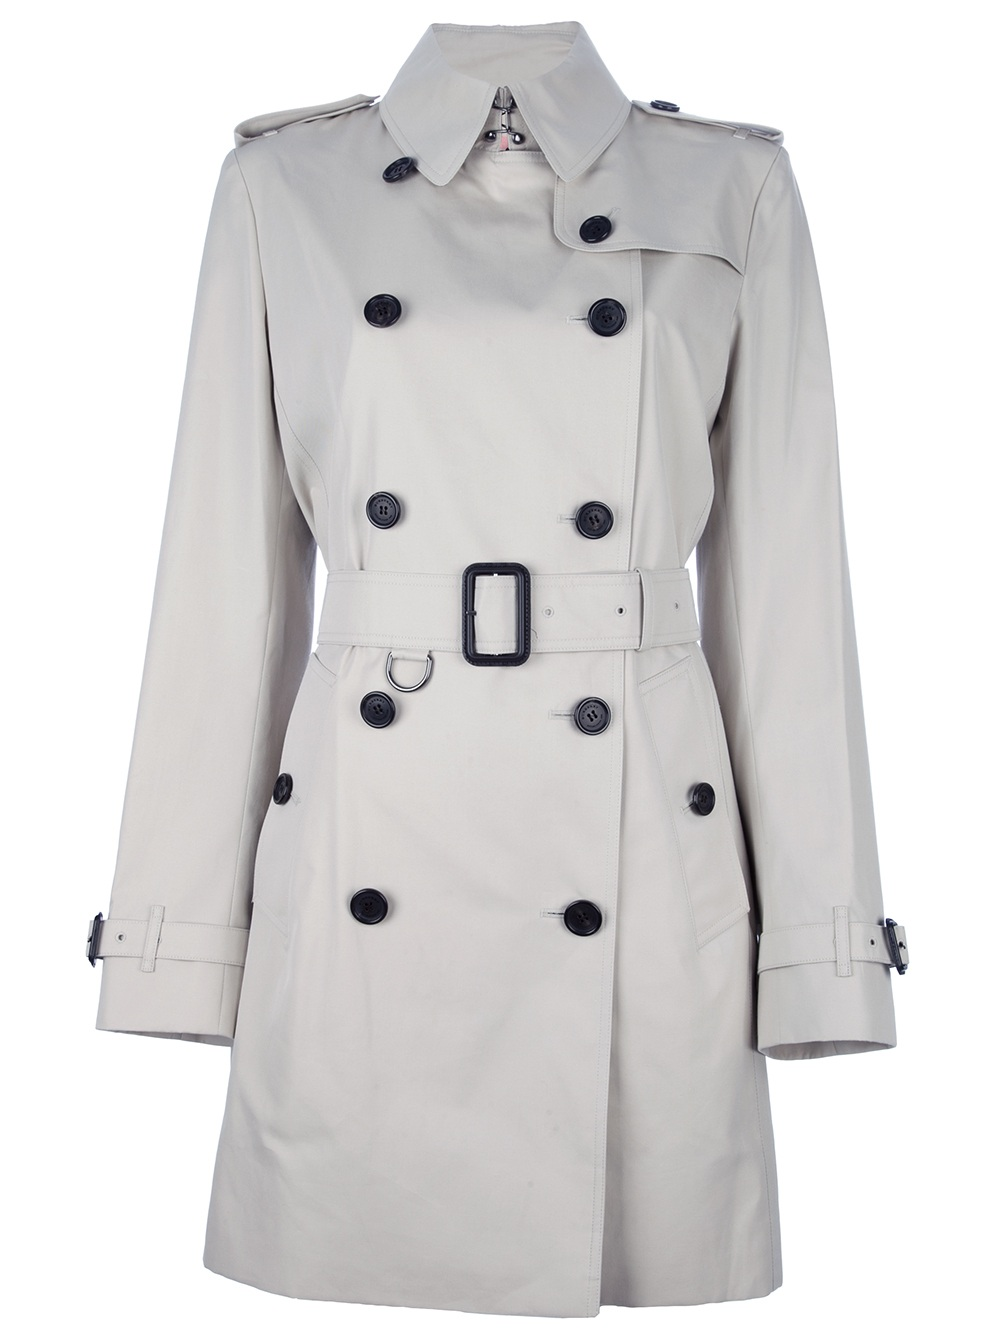 Burberry Classic Trench Coat in Black